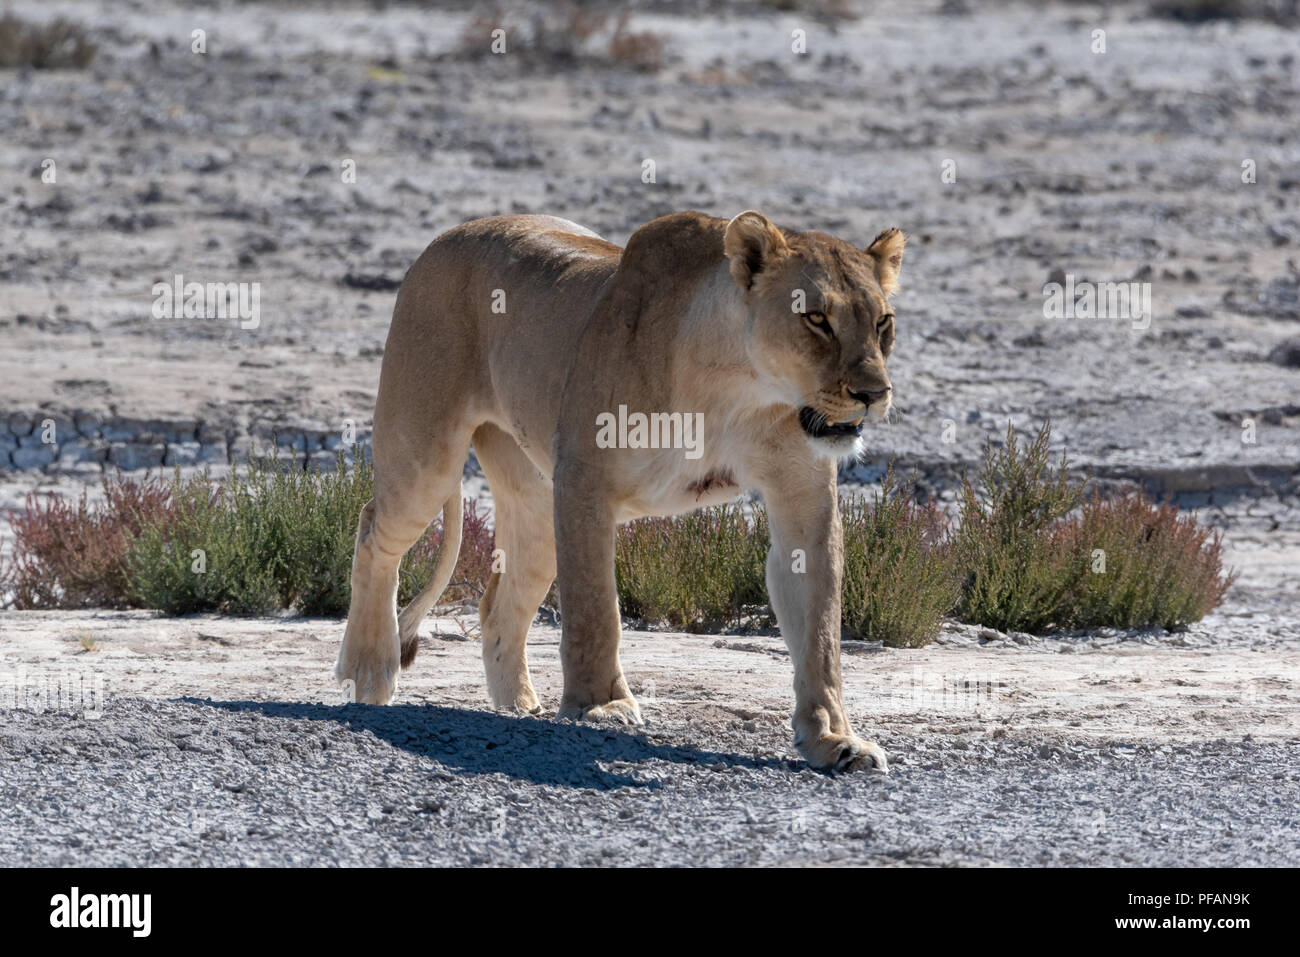 Lioness growling and showing teeth while walking on dry plain - Stock Image